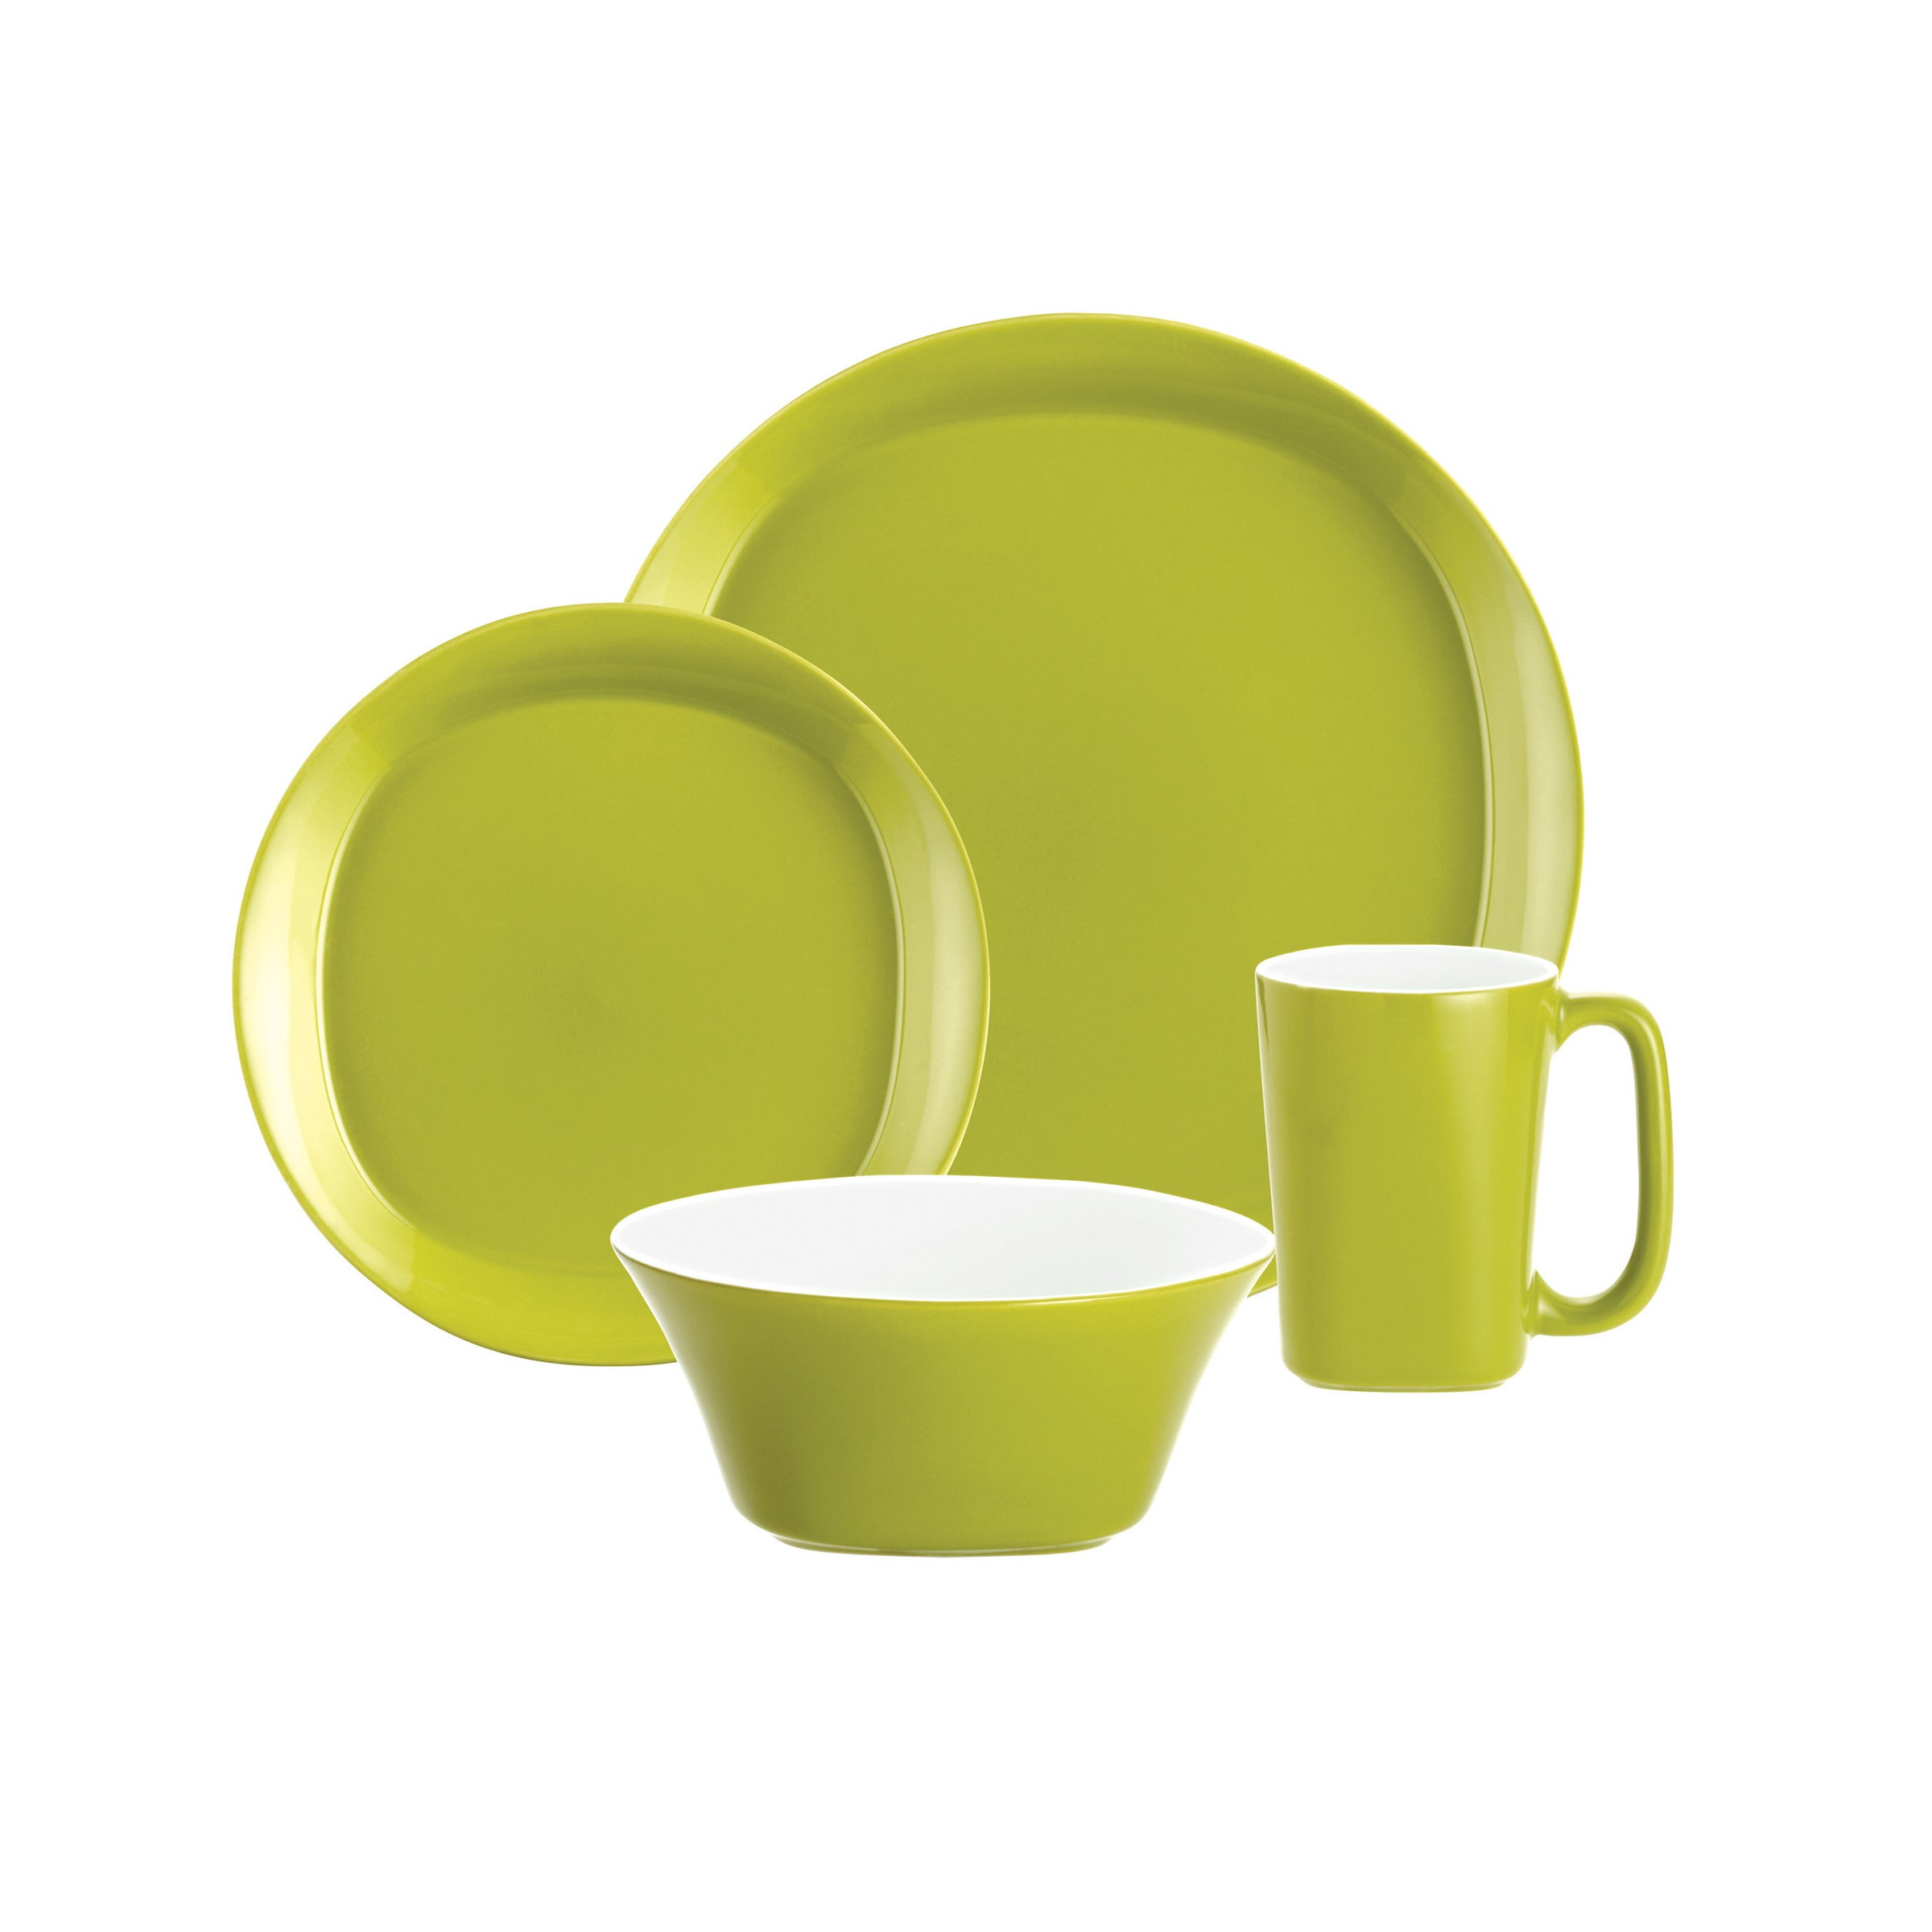 Rachael Ray Round u0026 Square Green Apple 4-piece Dinnerware Set - Free Shipping On Orders Over $45 - Overstock - 14916681  sc 1 st  Overstock.com & Rachael Ray Round u0026 Square Green Apple 4-piece Dinnerware Set - Free ...